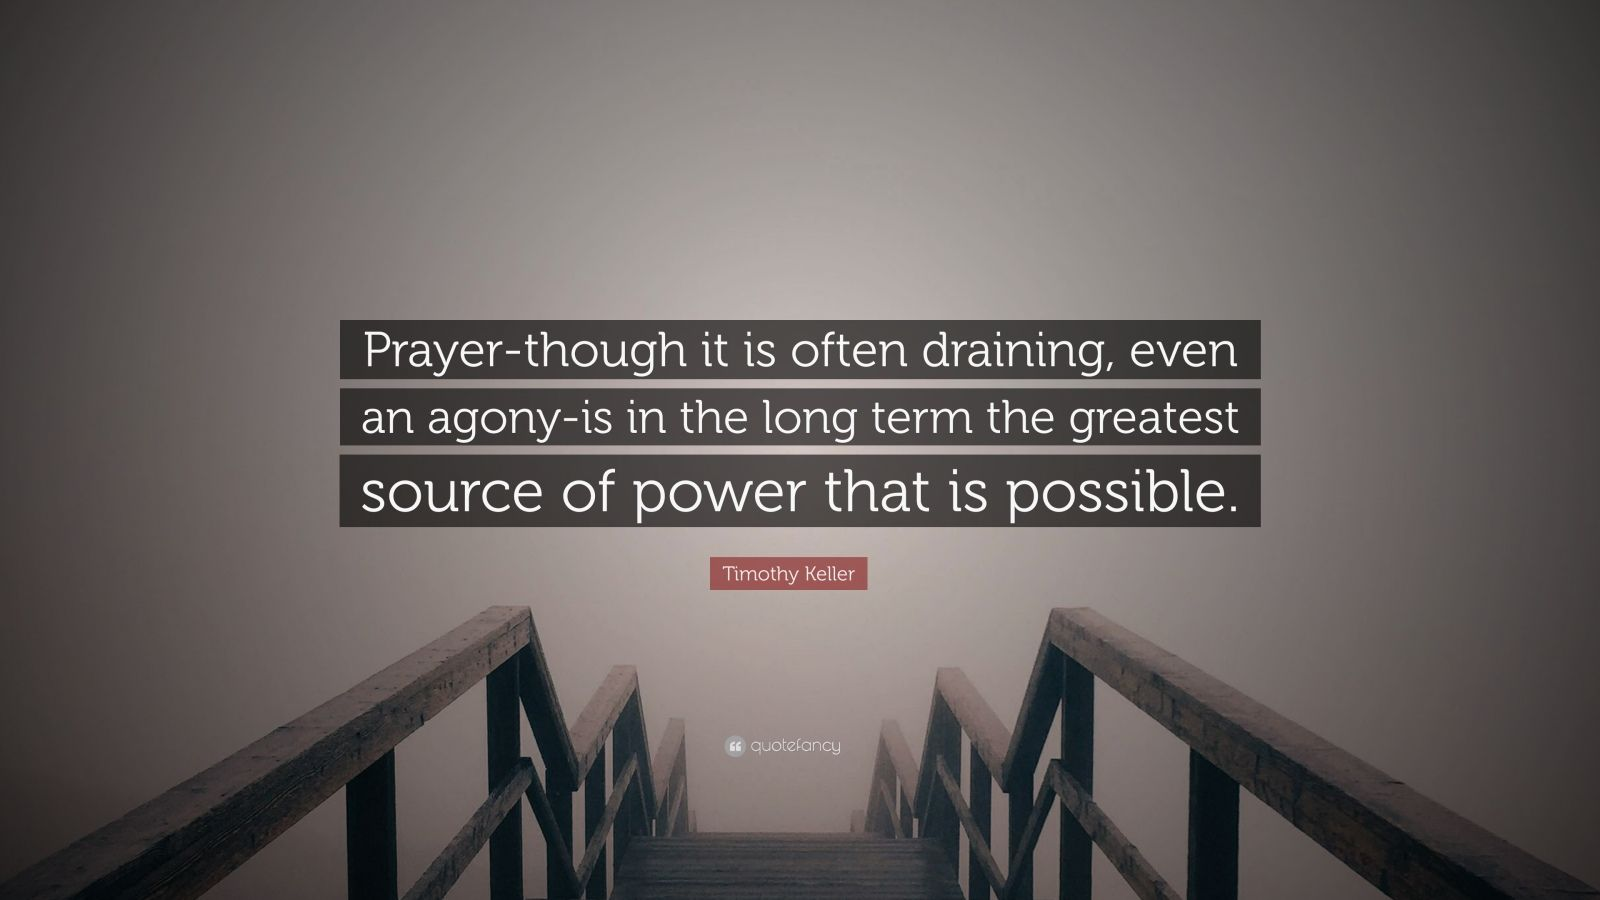 """Timothy Keller Quote: """"Prayer-though it is often draining, even an agony-is in the long term the greatest source of power that is possible."""""""